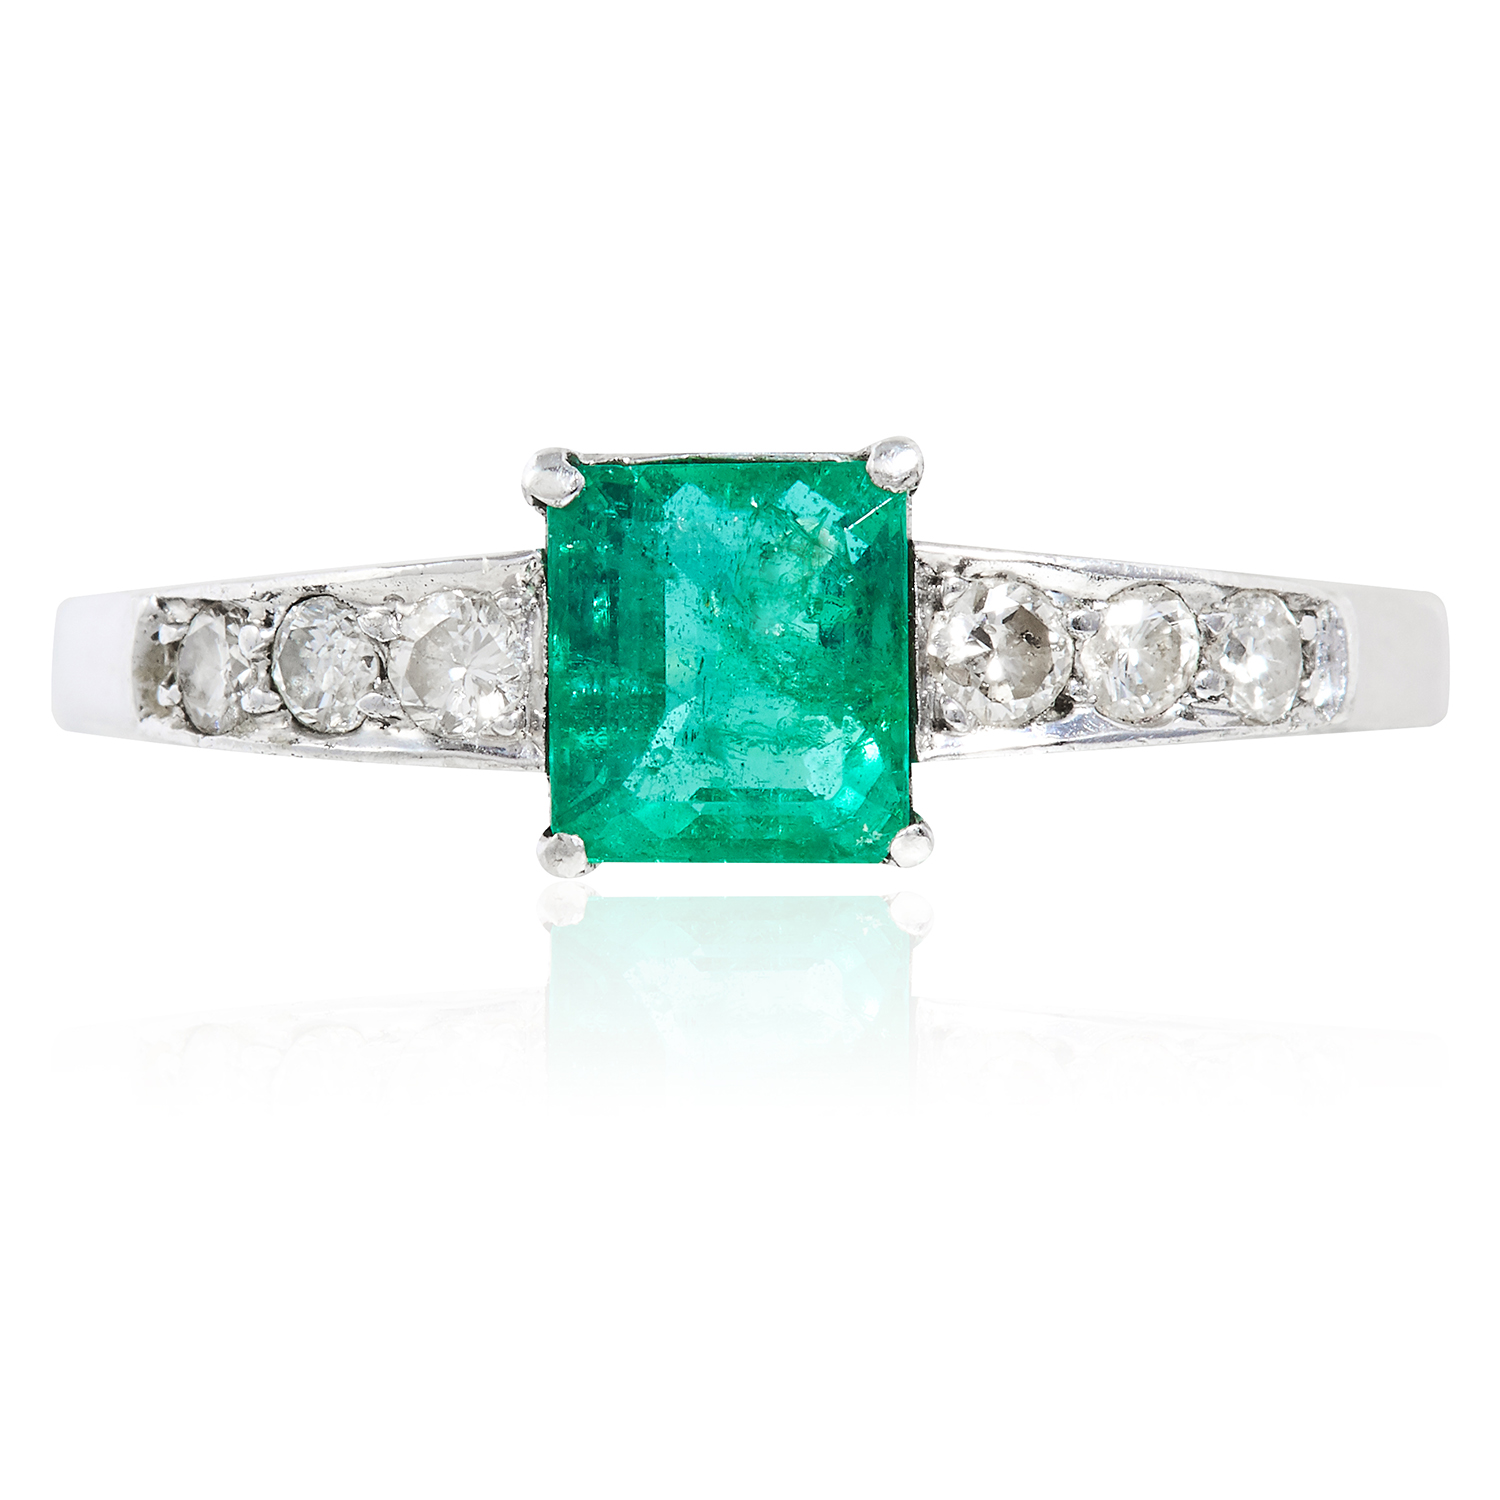 Los 38 - AN EMERALD AND DIAMOND RING in platinum or white gold, the central step cut emerald of 0.85 carats